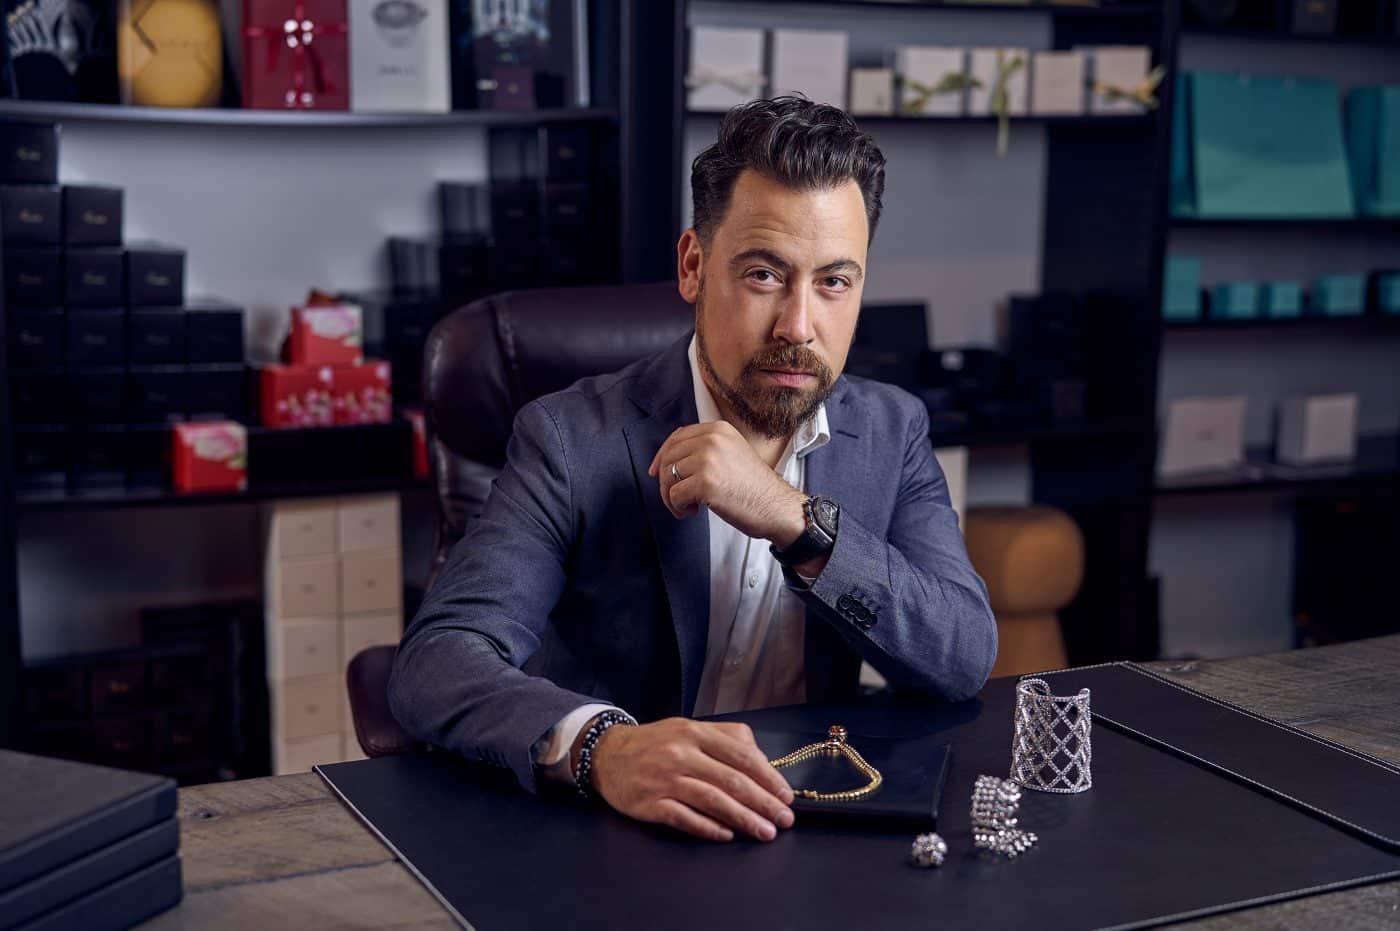 Portrait of Jonathan Yedwabnik, founder and CEO of Opulent Jewelers